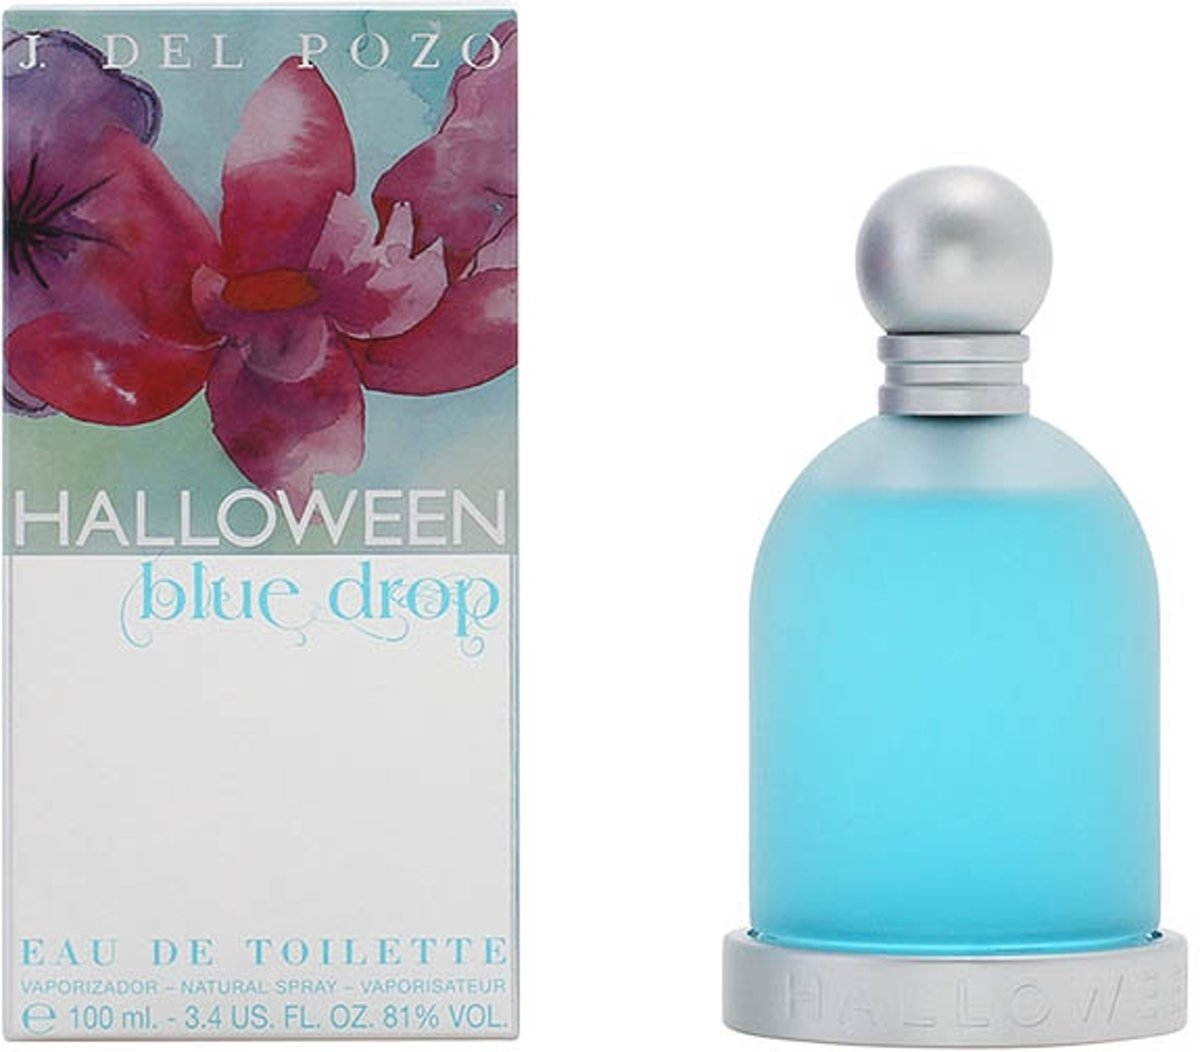 Jesus Del Pozo Halloween Blue Drop EDT 100 ml